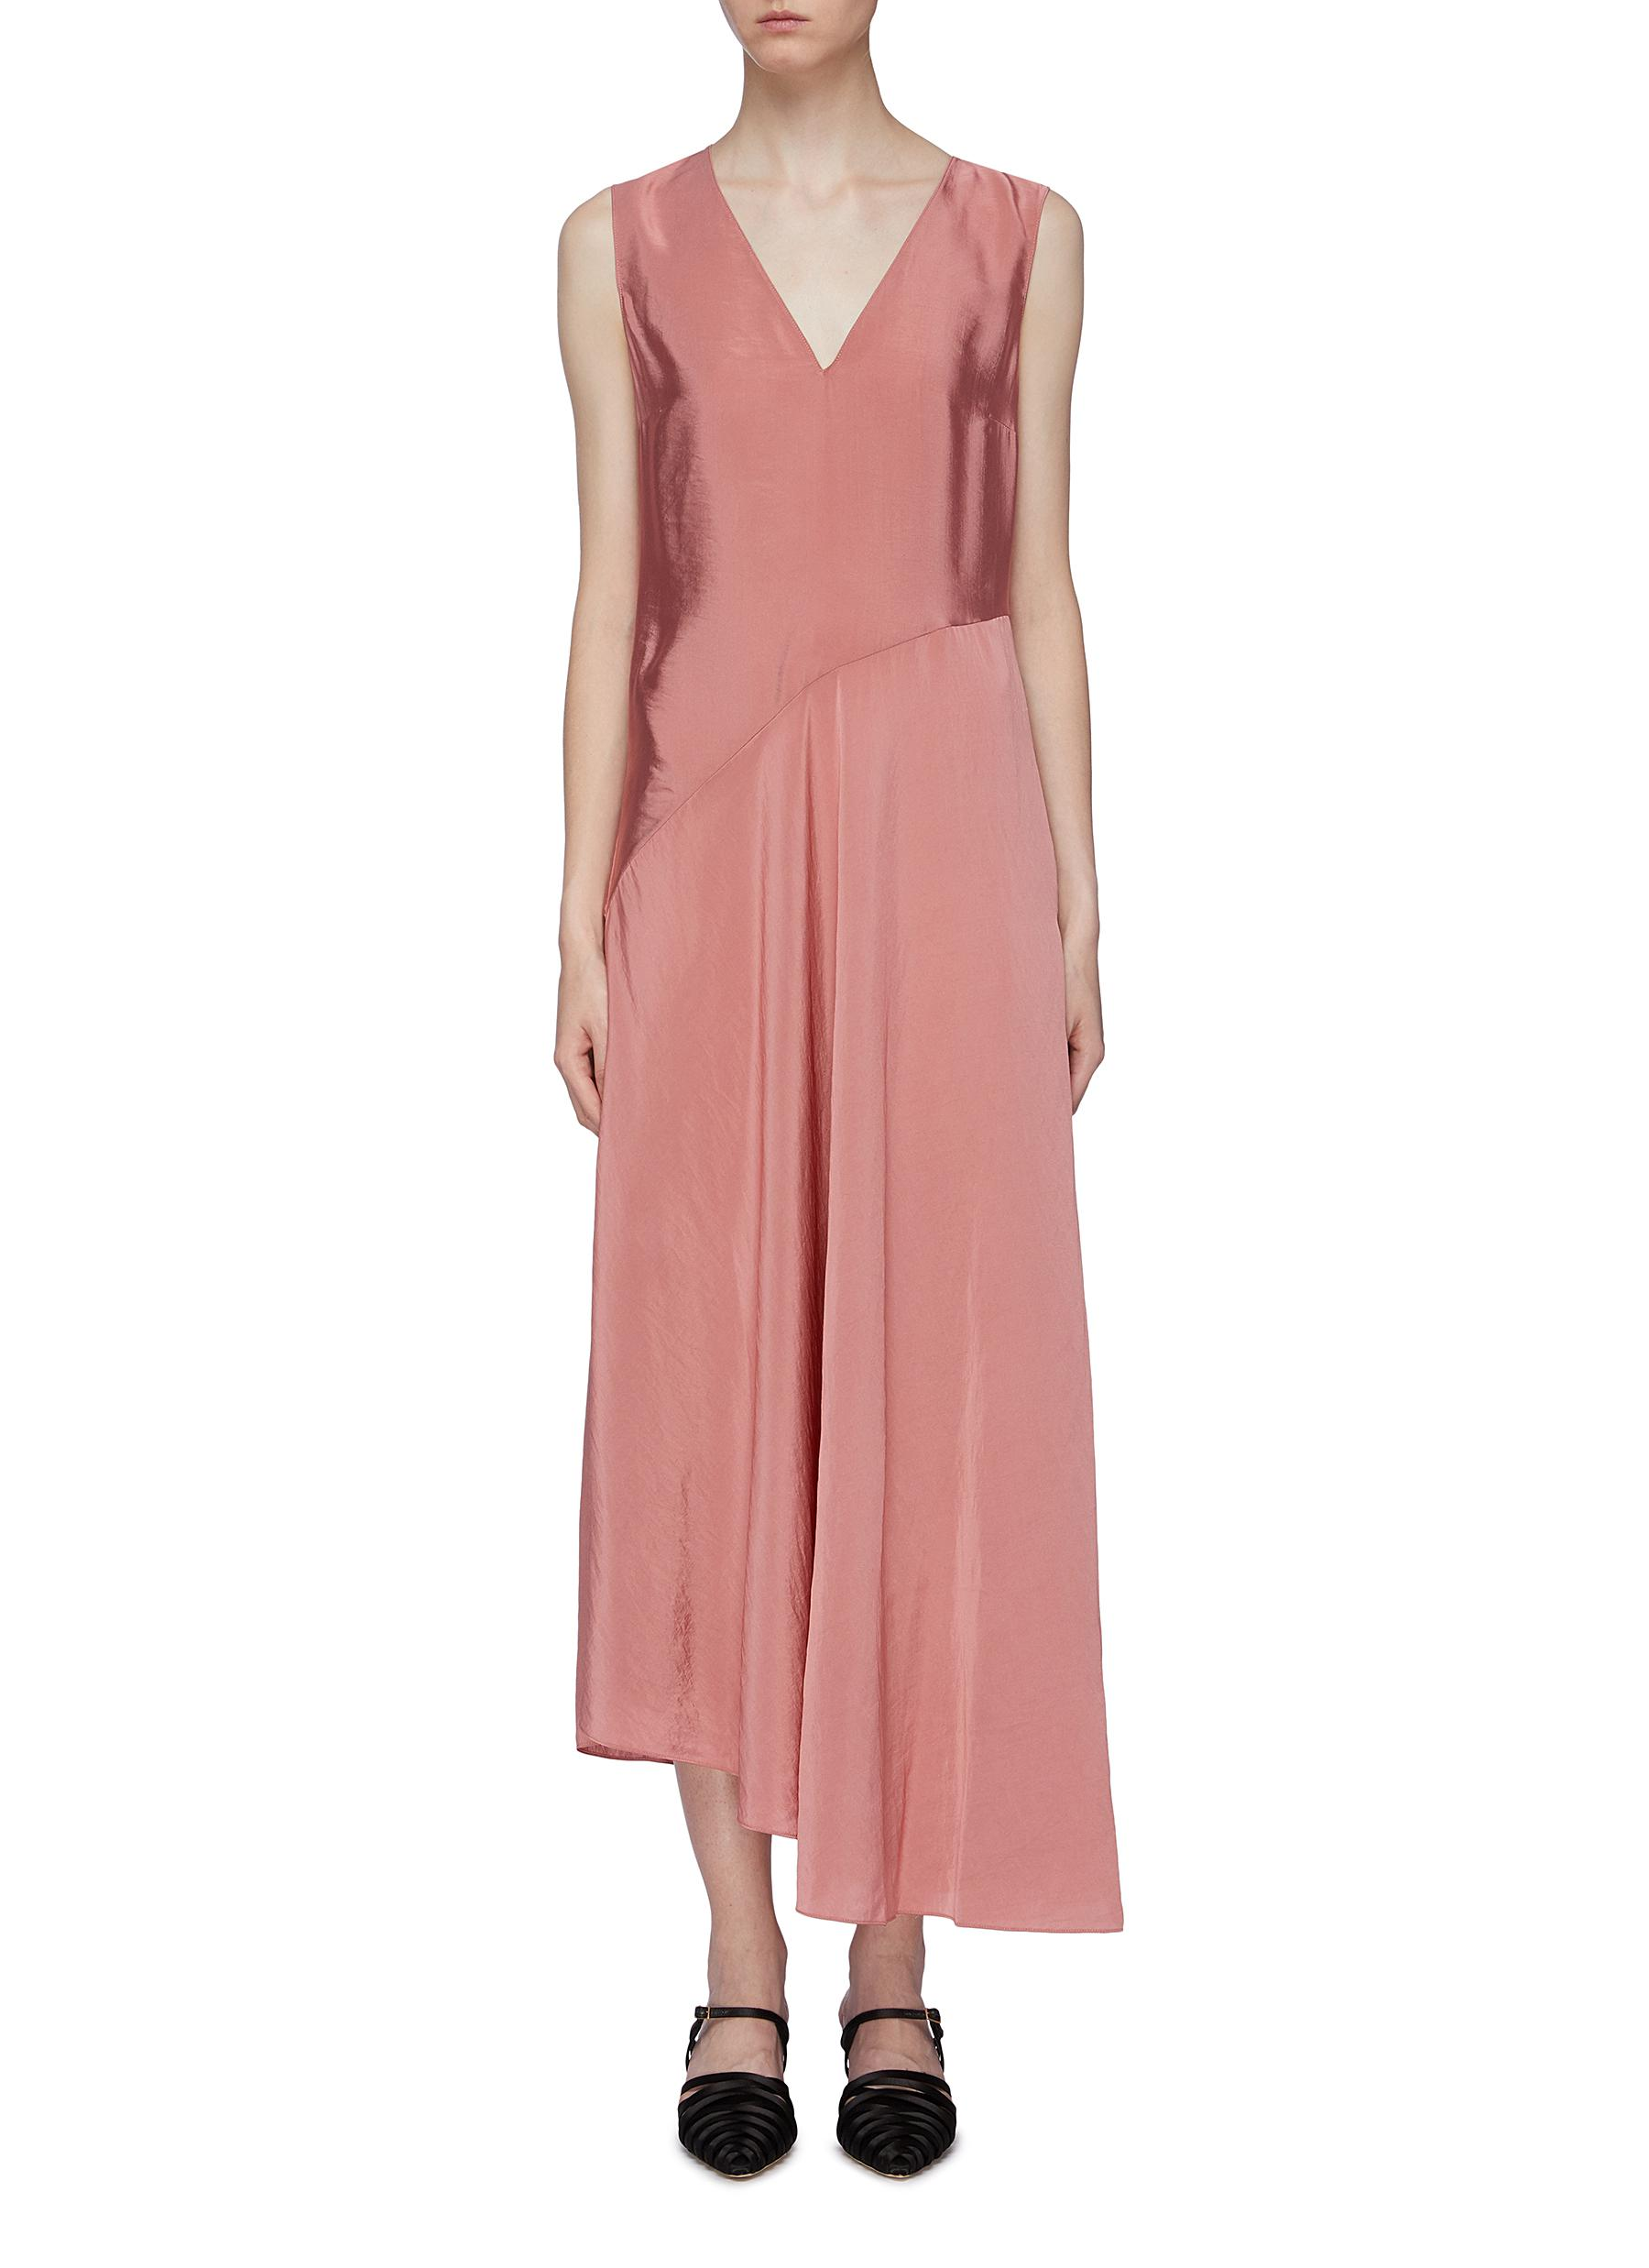 Twill sleeveless dress by Theory